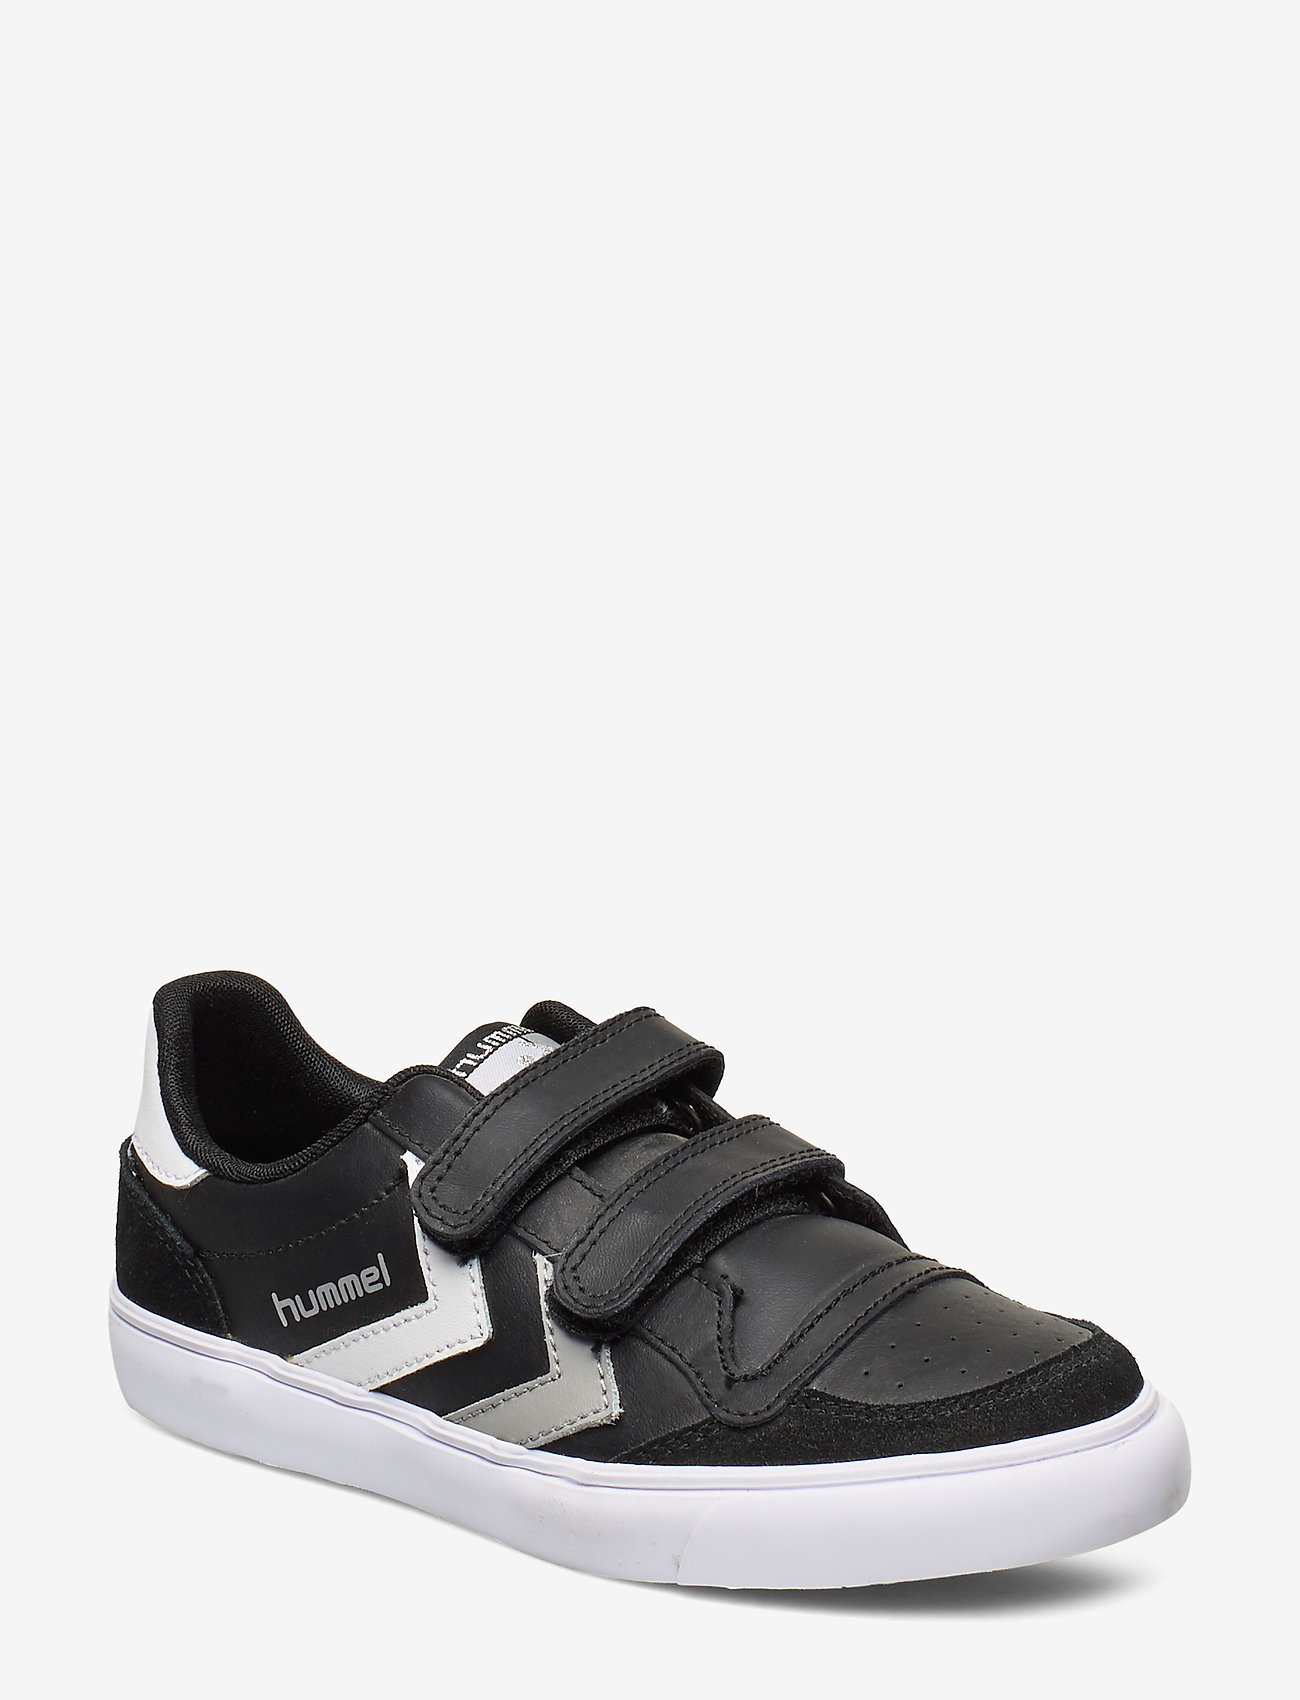 Hummel - HUMMEL STADIL JR LEATHER LOW - baskets - black/white/grey - 0